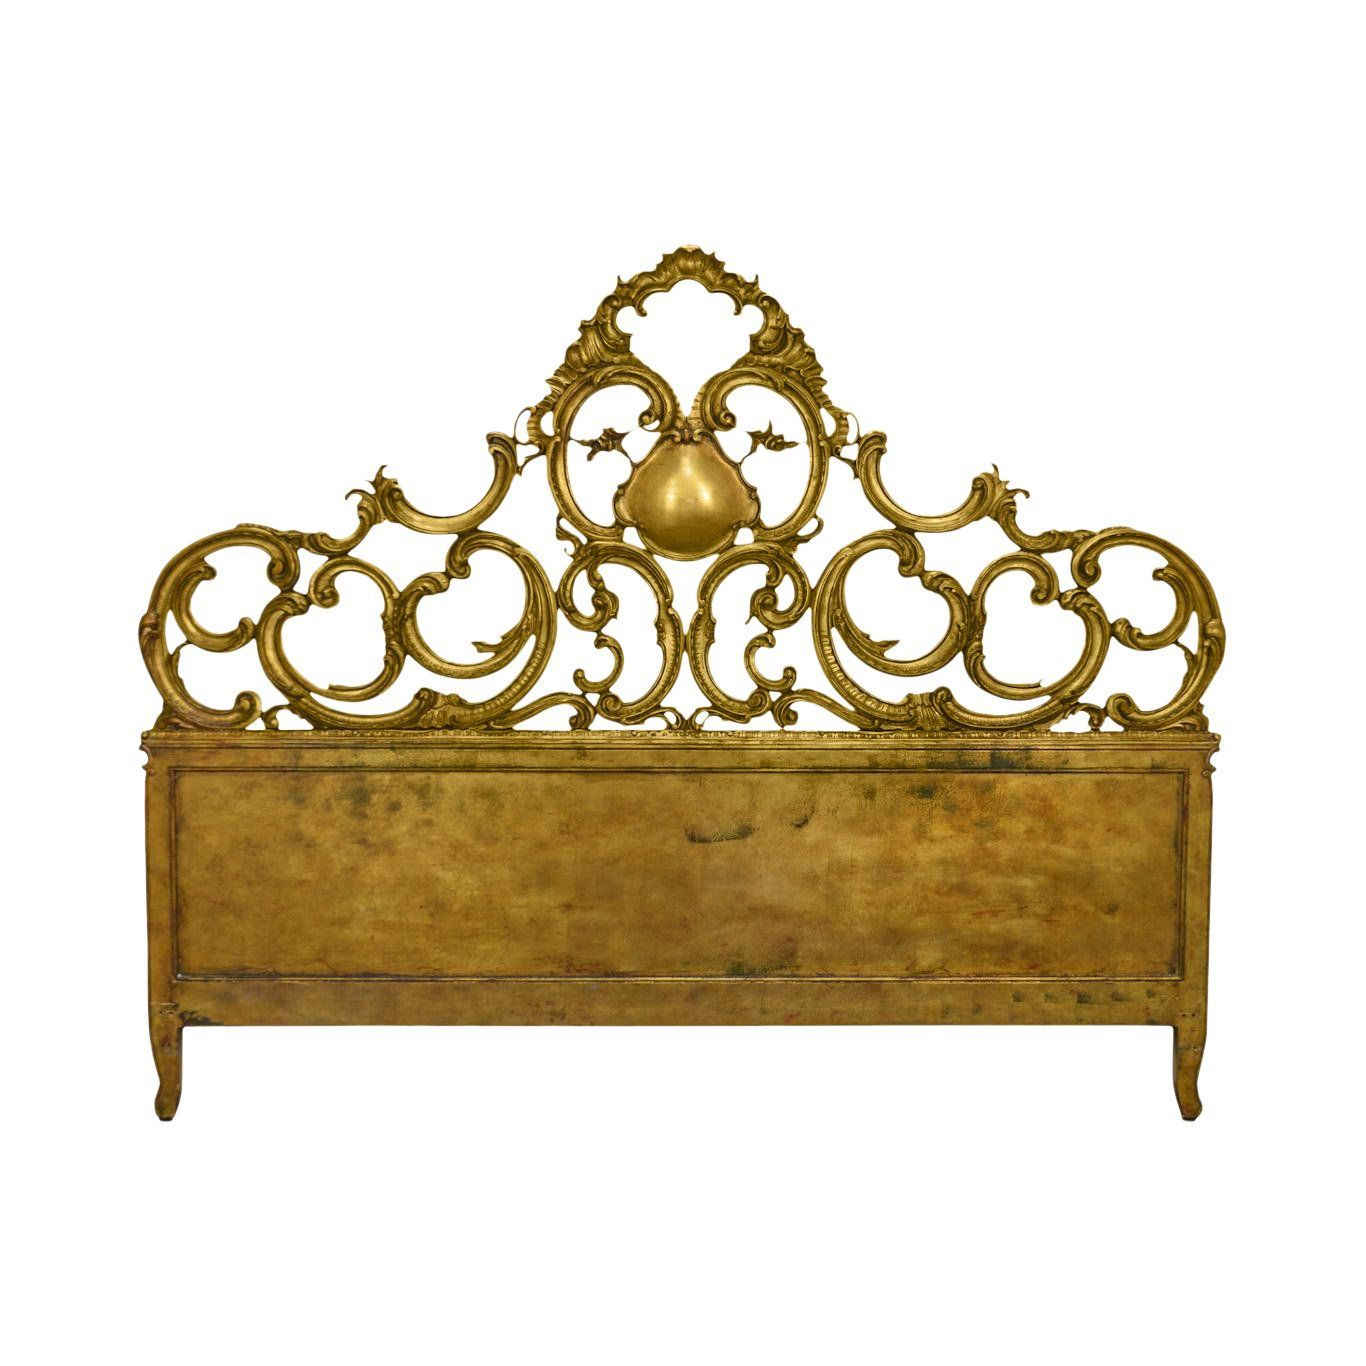 Carved Italian Gold Gilt Wood Florentine Rococo Style King